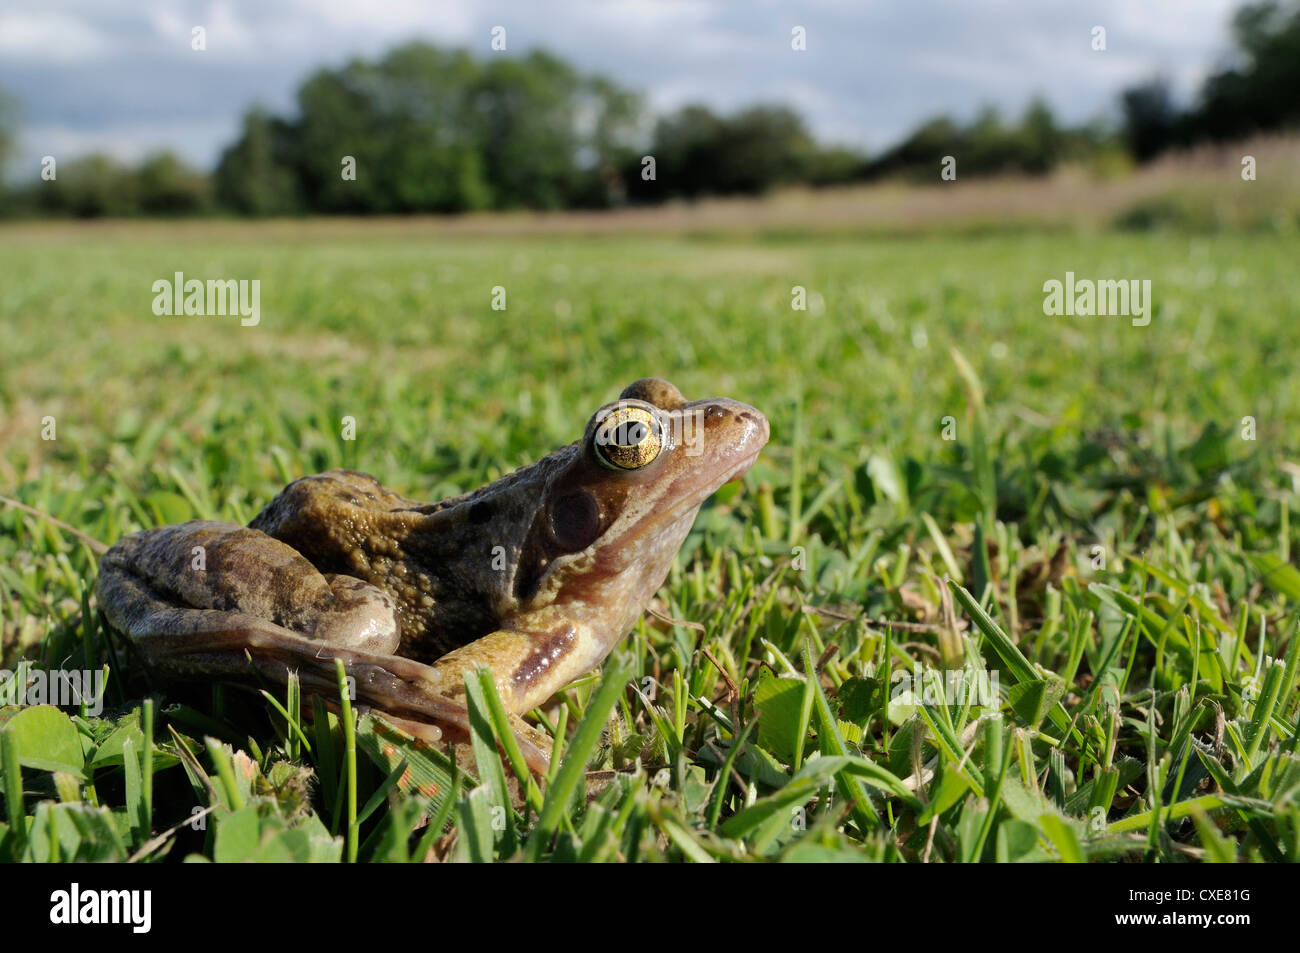 Common frog or grass frog (Rana temporaria) in damp meadow, Wiltshire, England - Stock Image